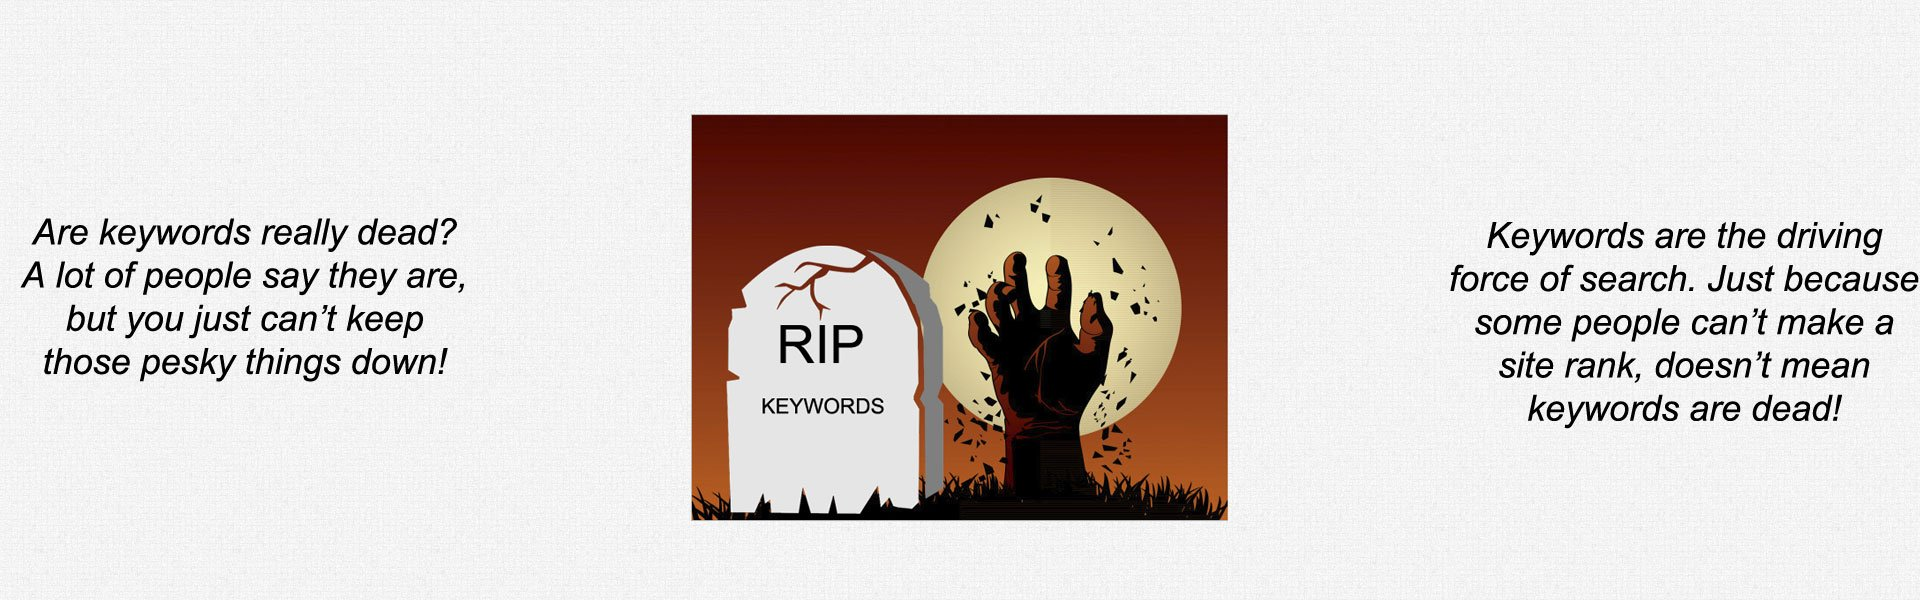 Are keywords really dead?